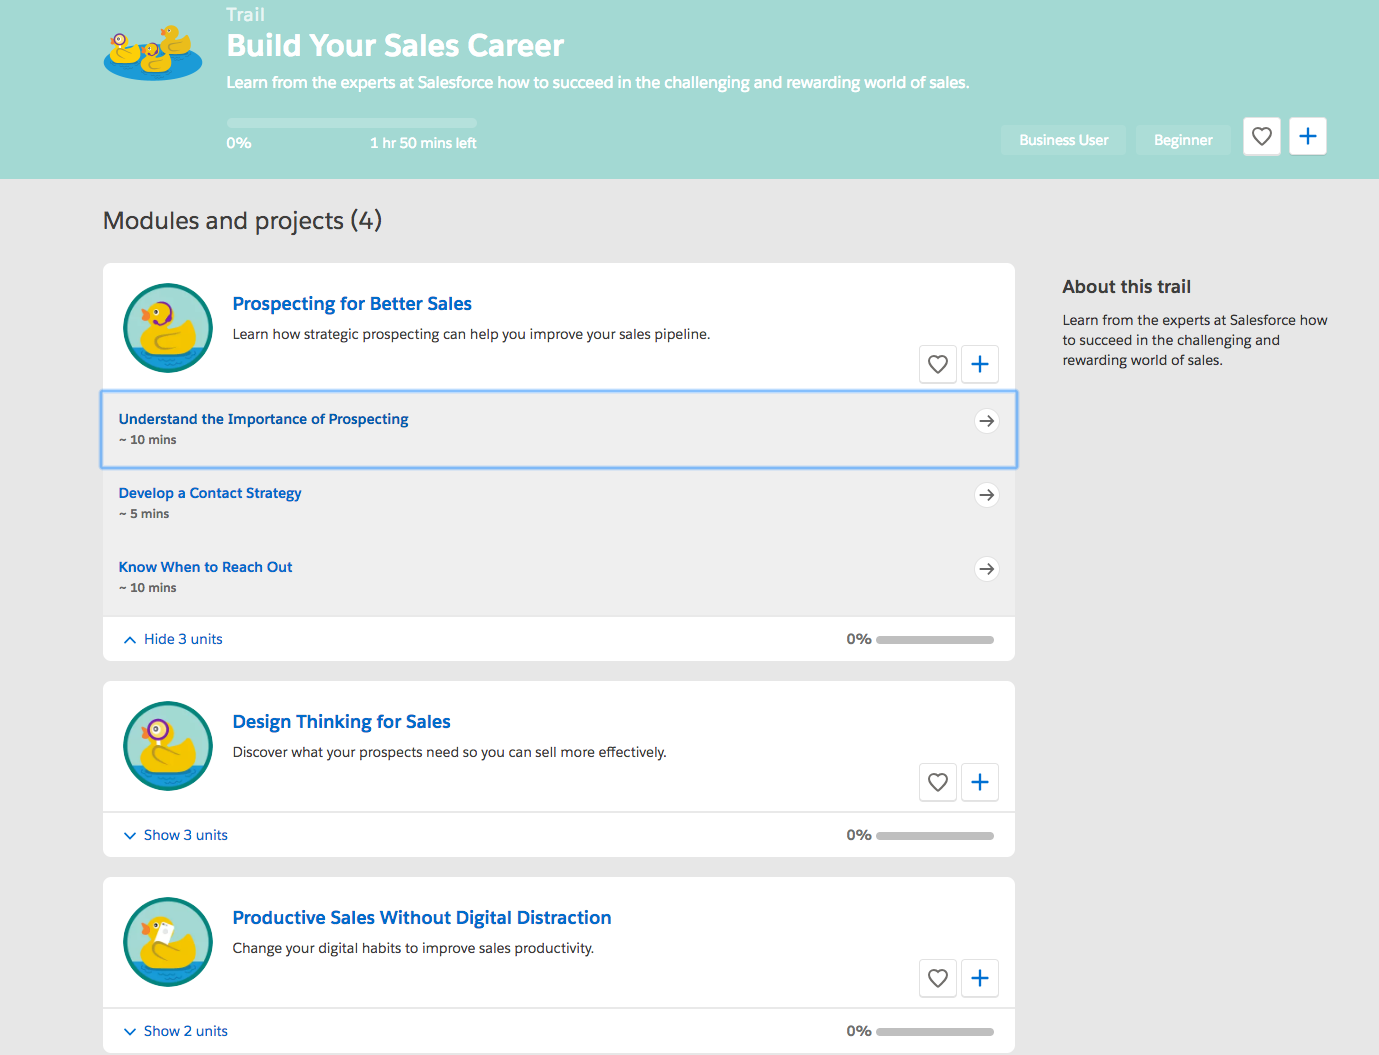 A screenshot of the Build Your Sales Career trail with its modules, showing the unit topics for the first module